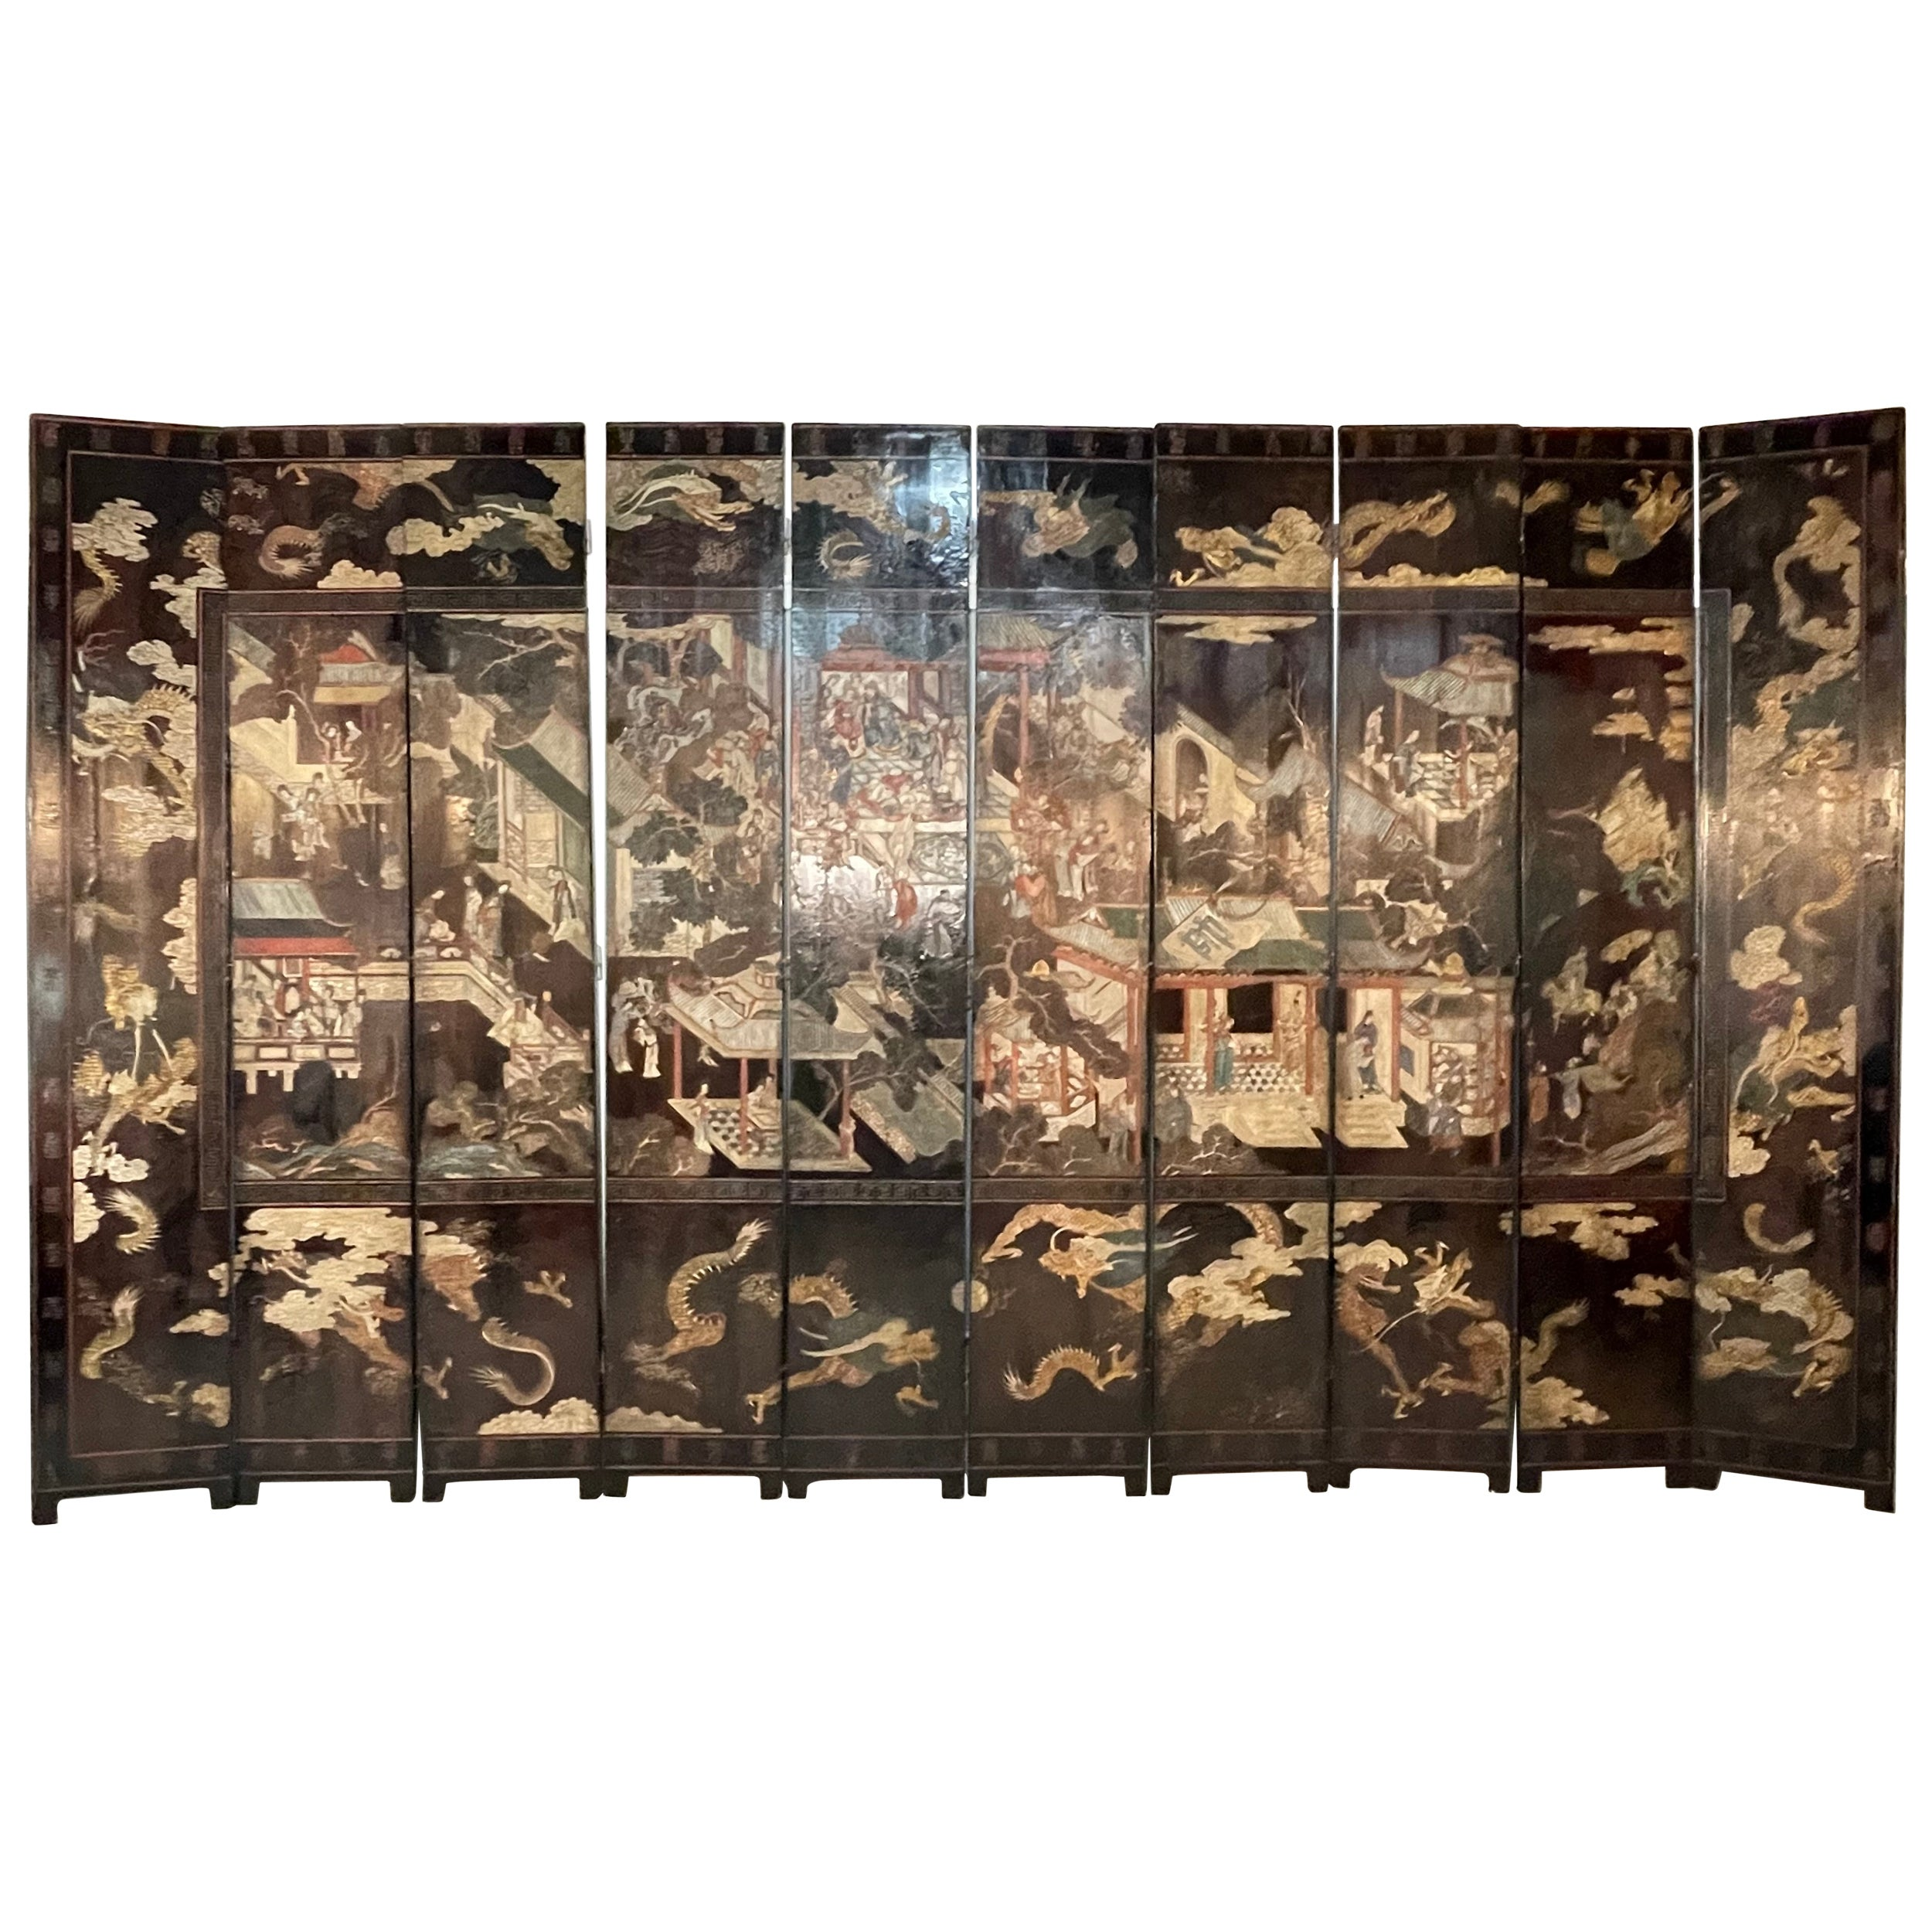 Mid-18th Century Chinese Coromandel Ten Fold Screen / Room Divider